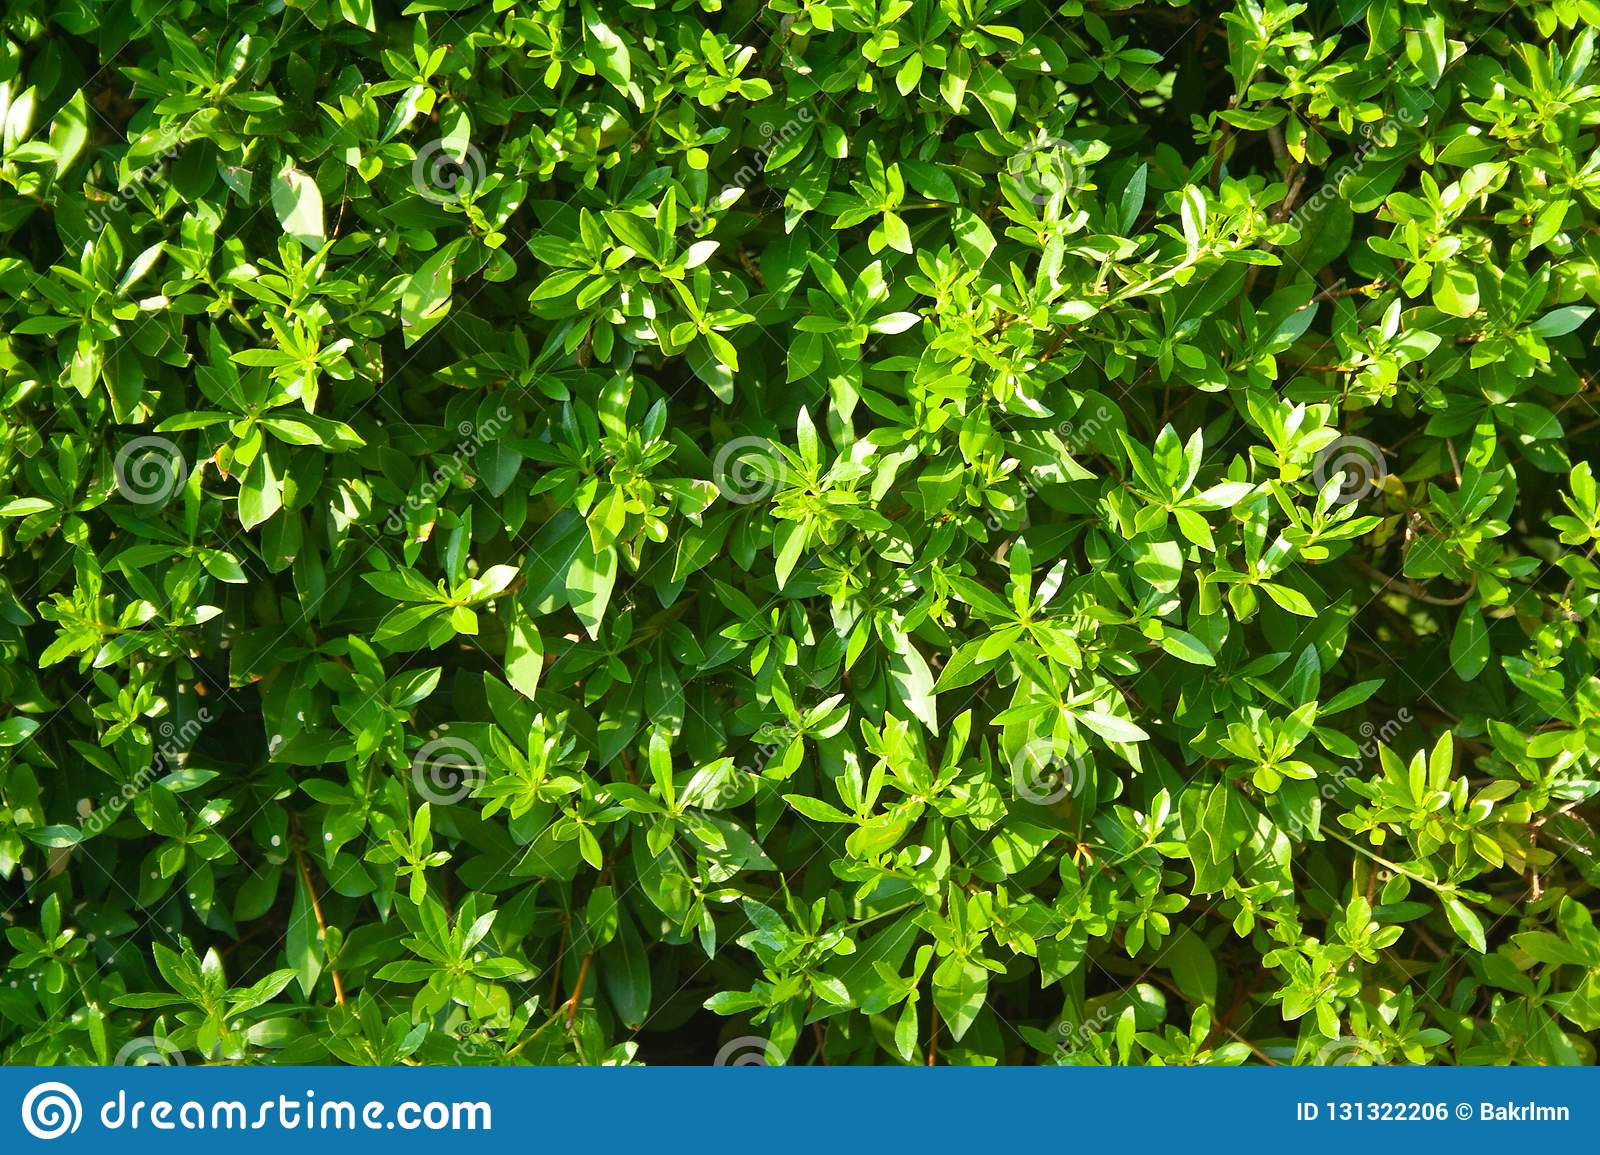 Background of green bush